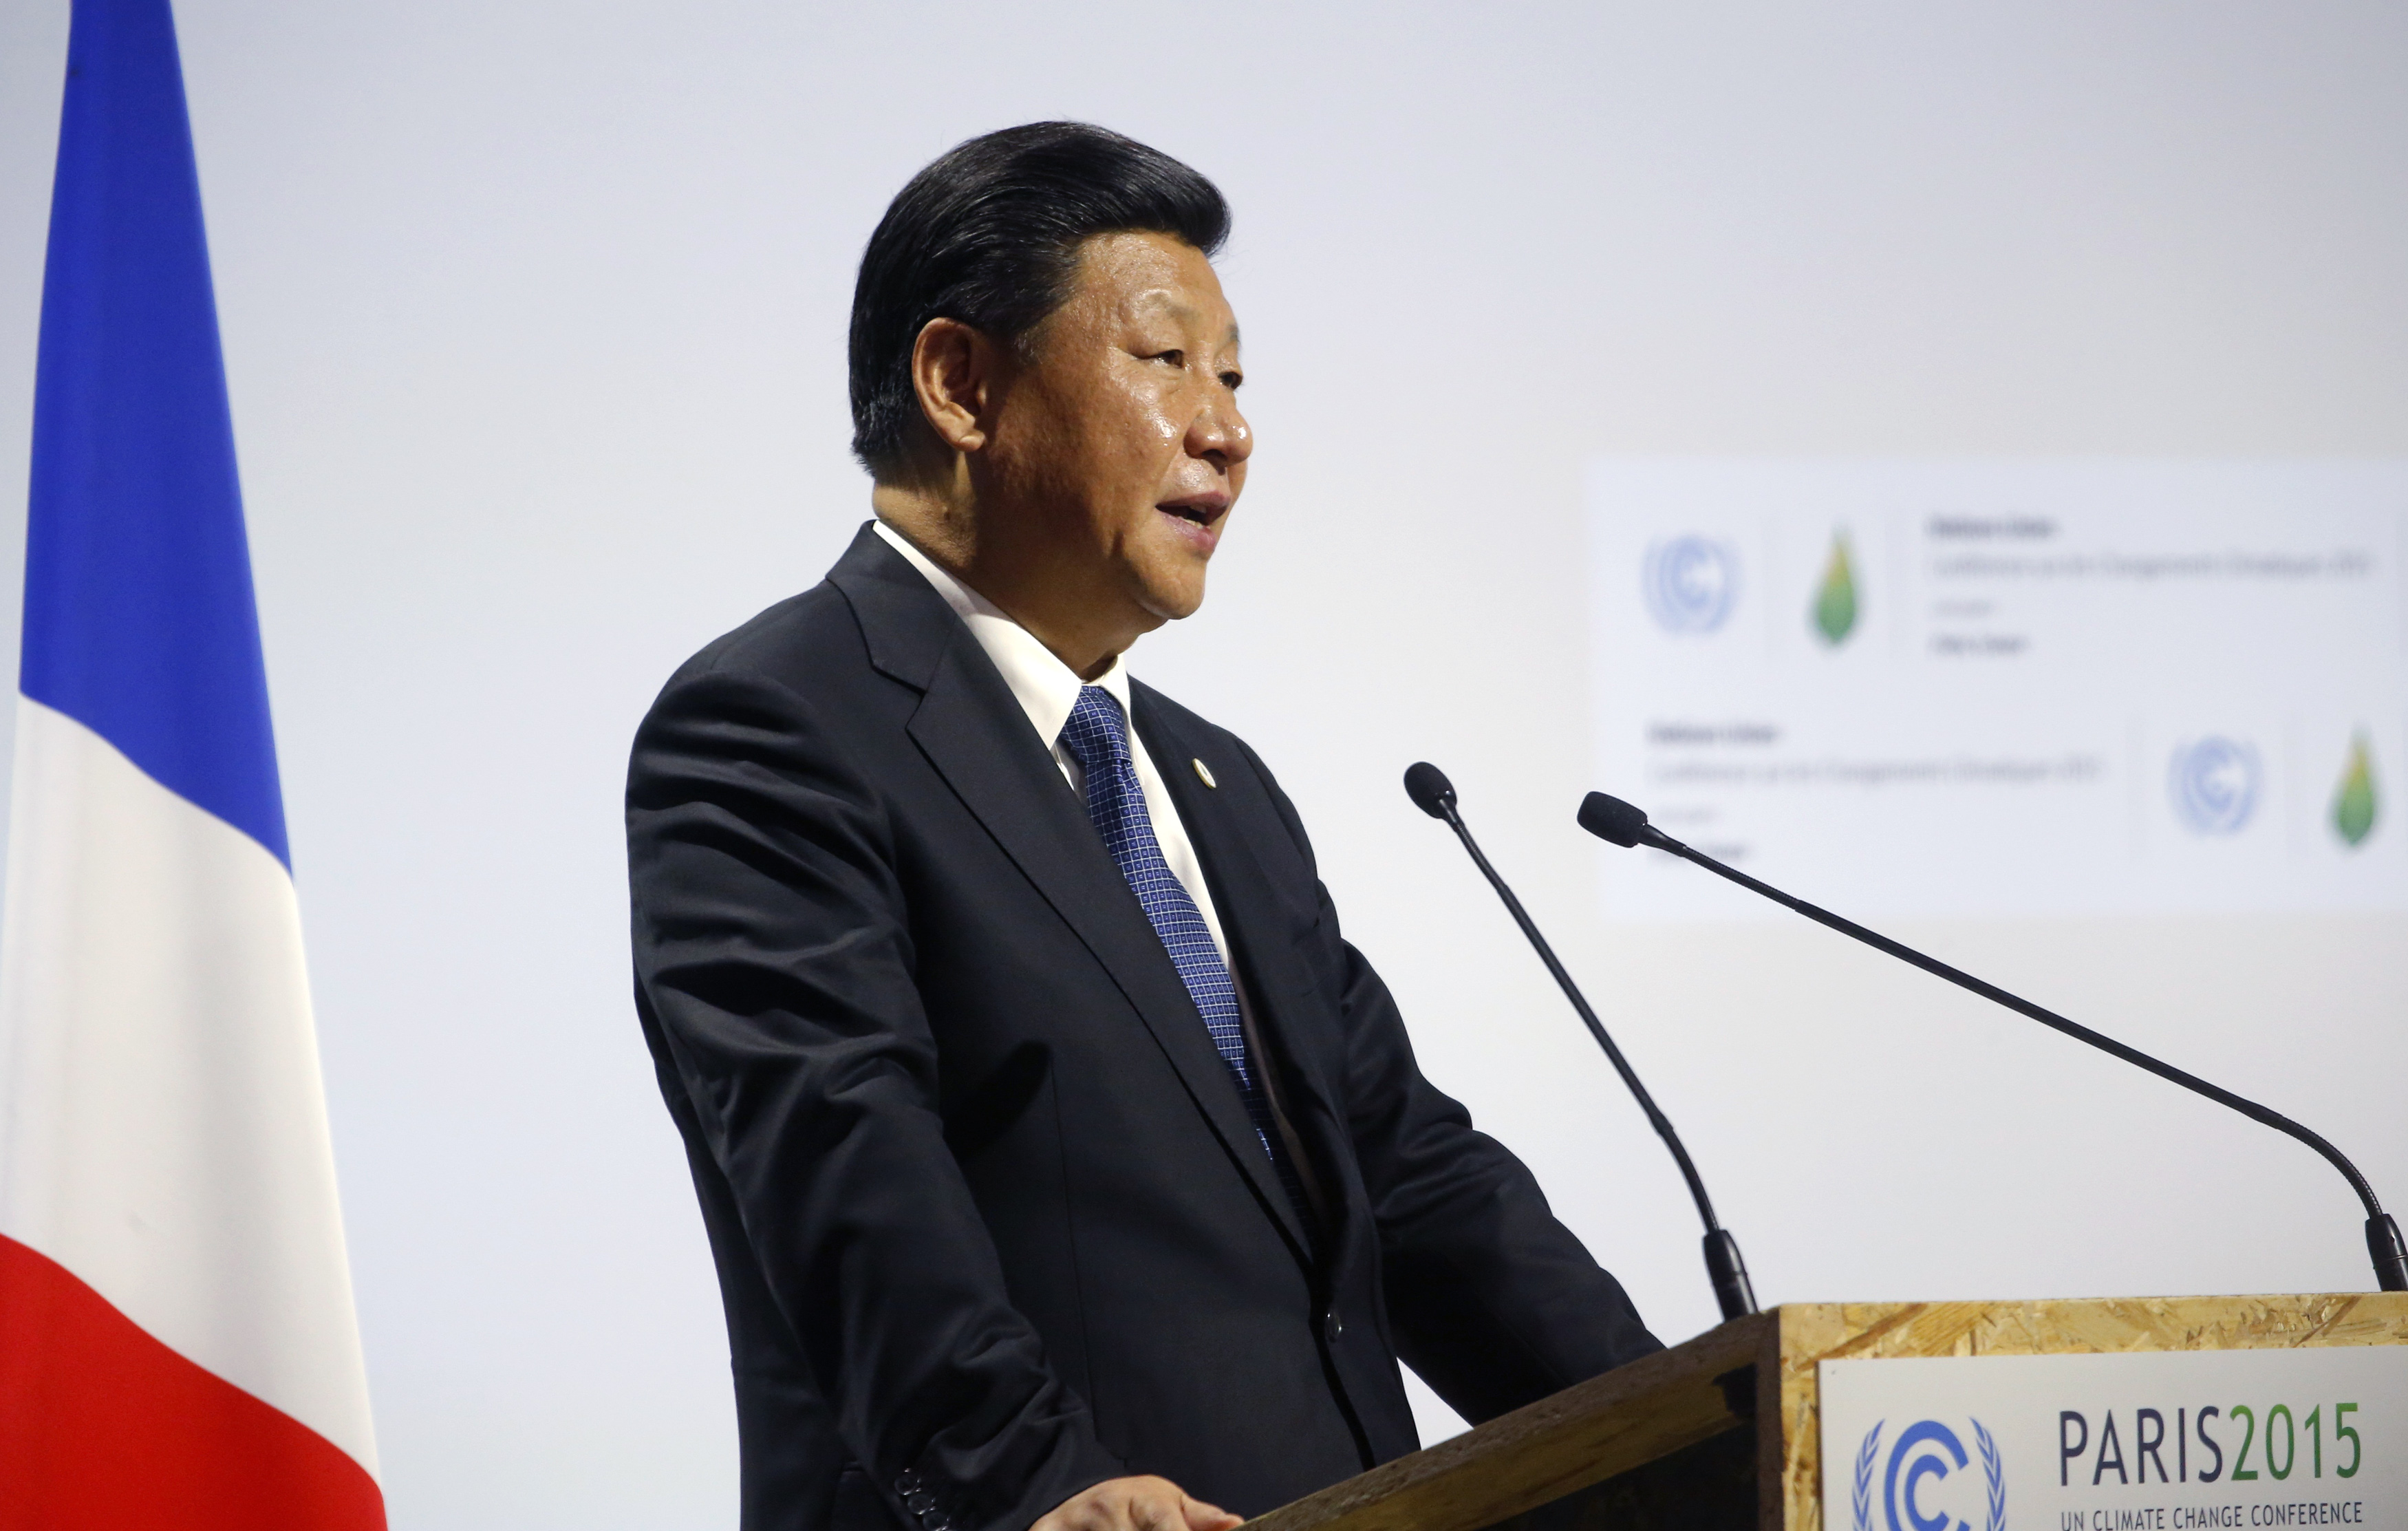 China's 'yes' to new role in climate battle